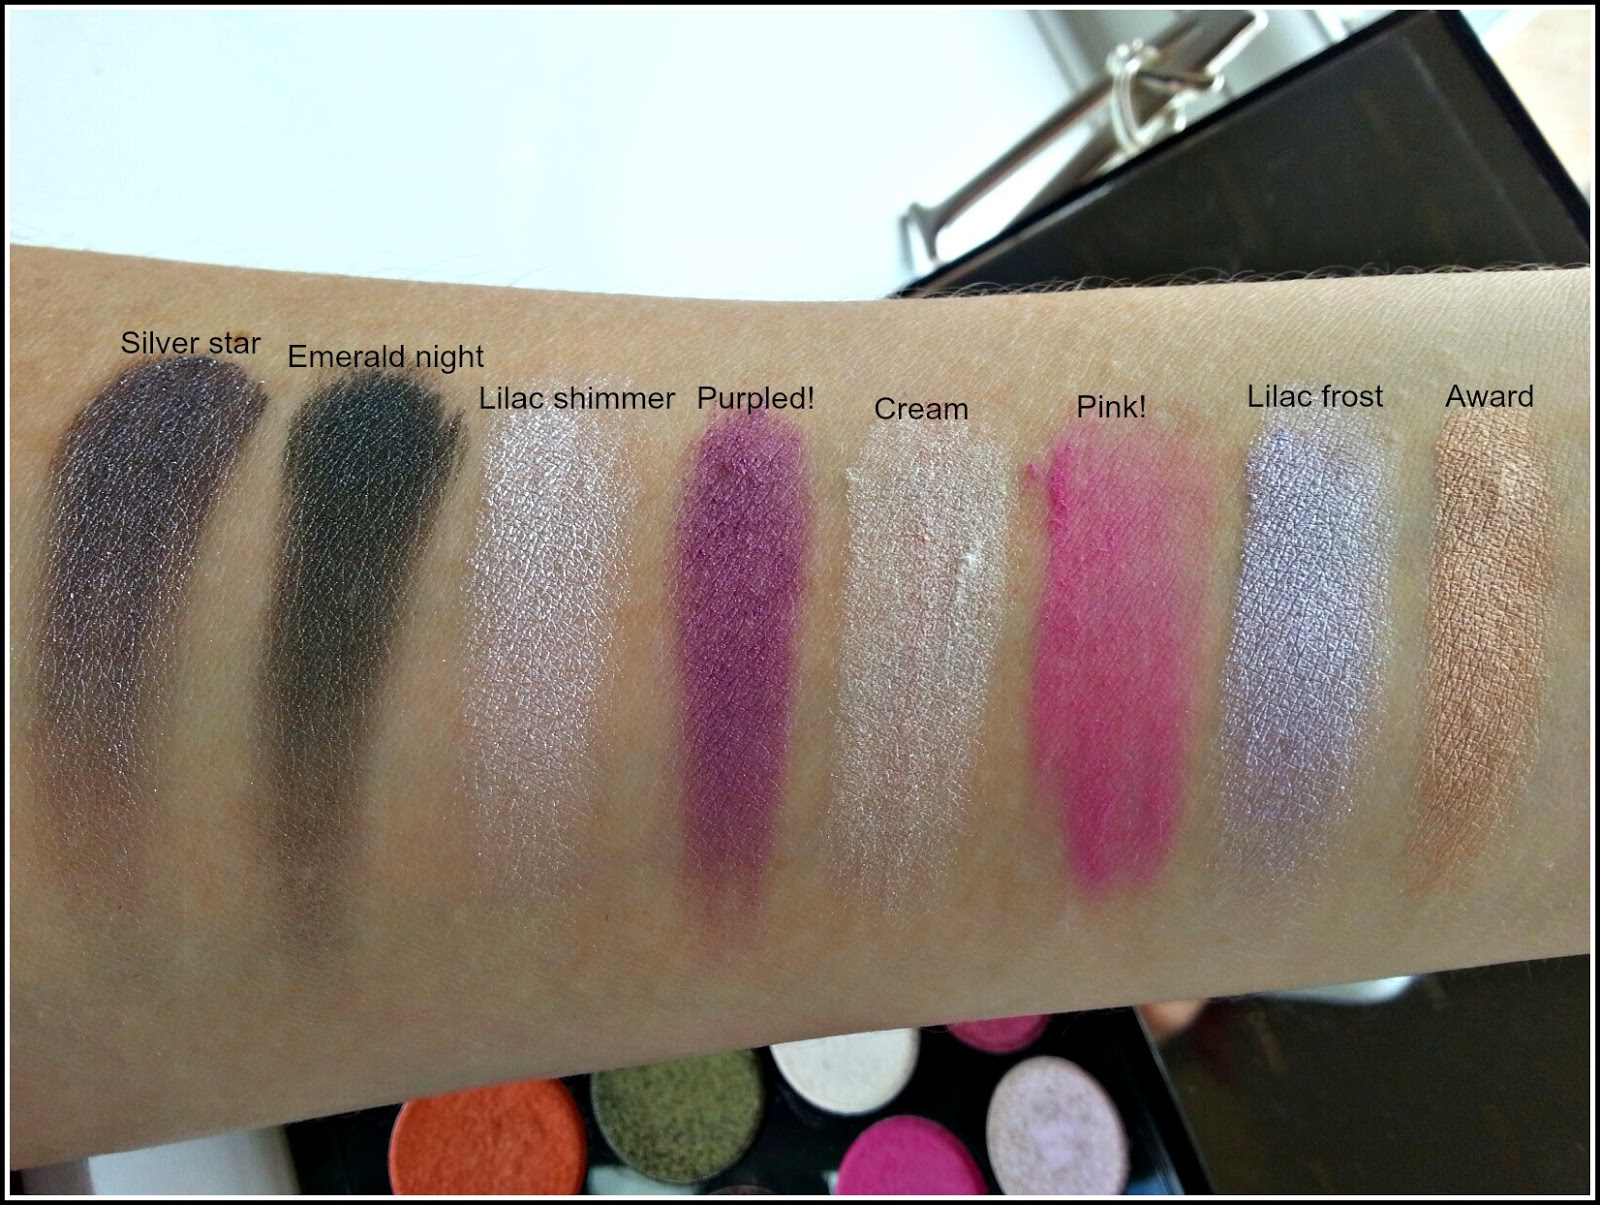 Makeup revolution eyes like angels review-4498